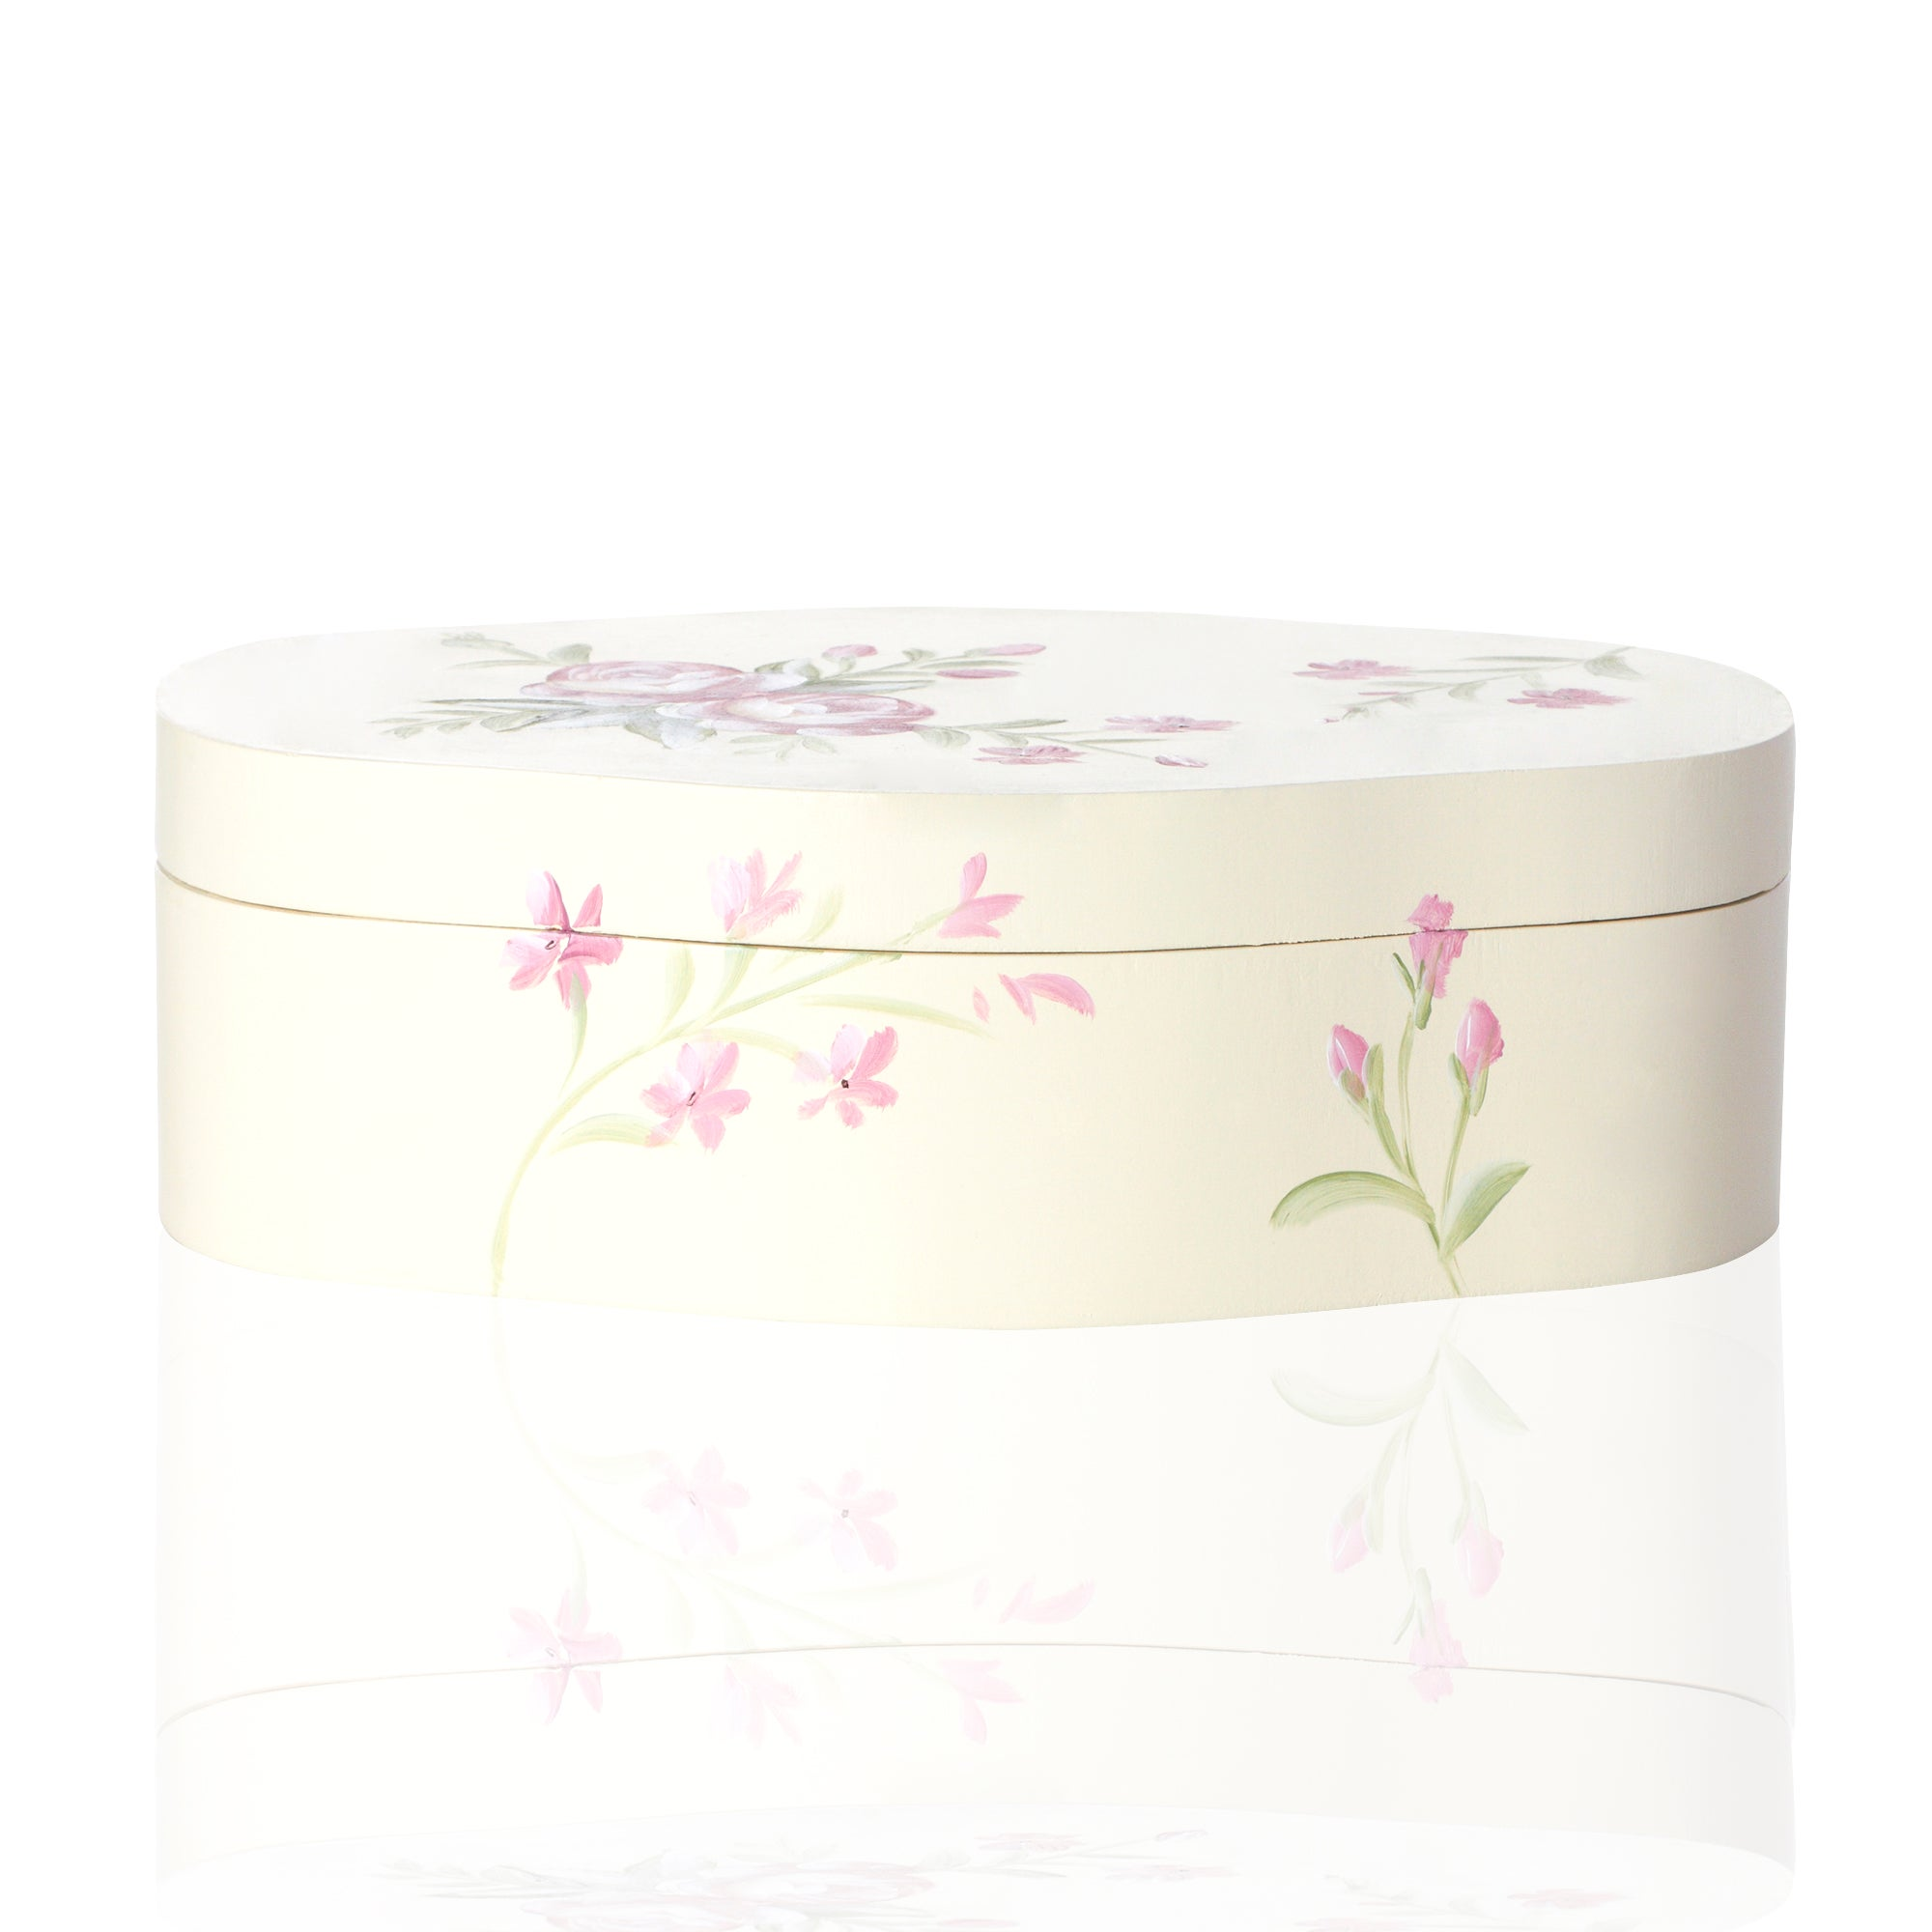 Floral Hand Painted Curved Keepsake Box